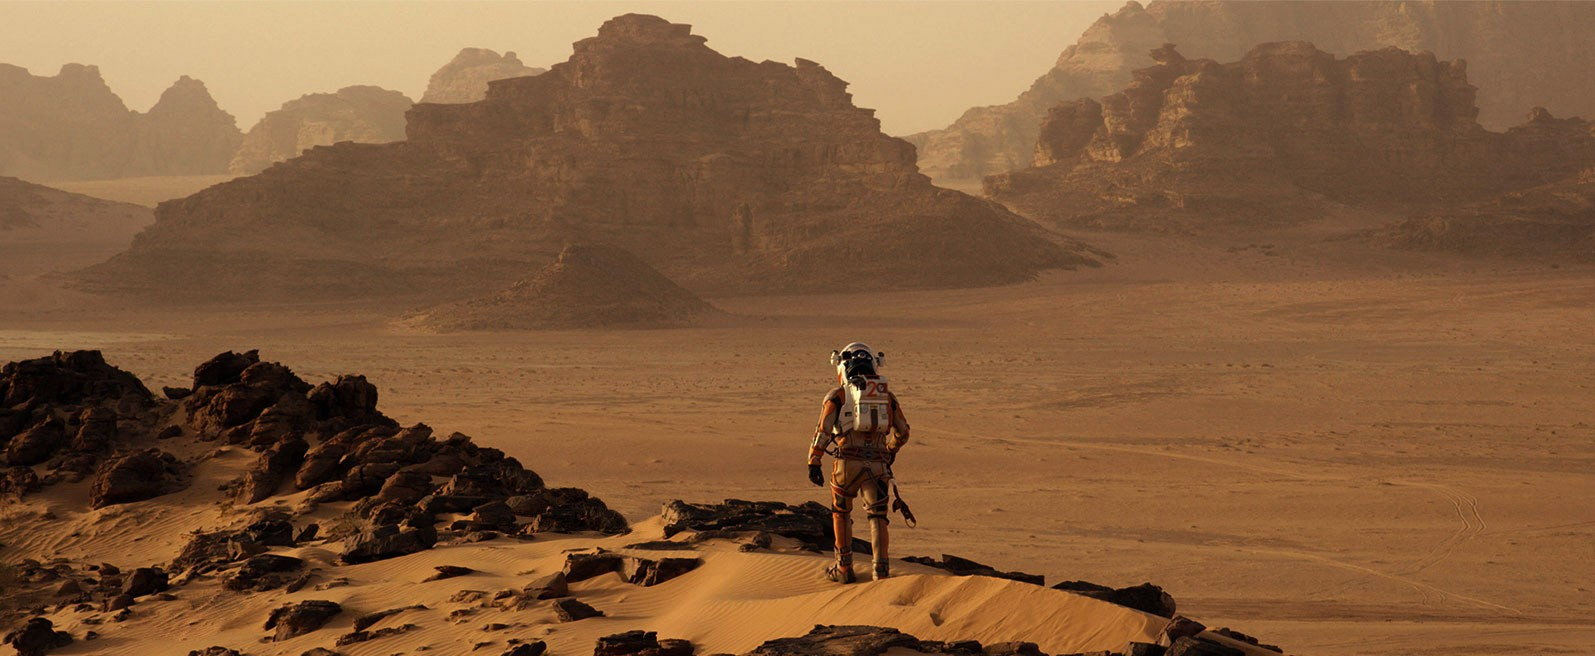 the key themes in the martian a futuristic novel by andy weir Scificom sci fi channel is now syfy, but you can still get access to all your favorite sci fi channel content right here syfy features science fiction,.